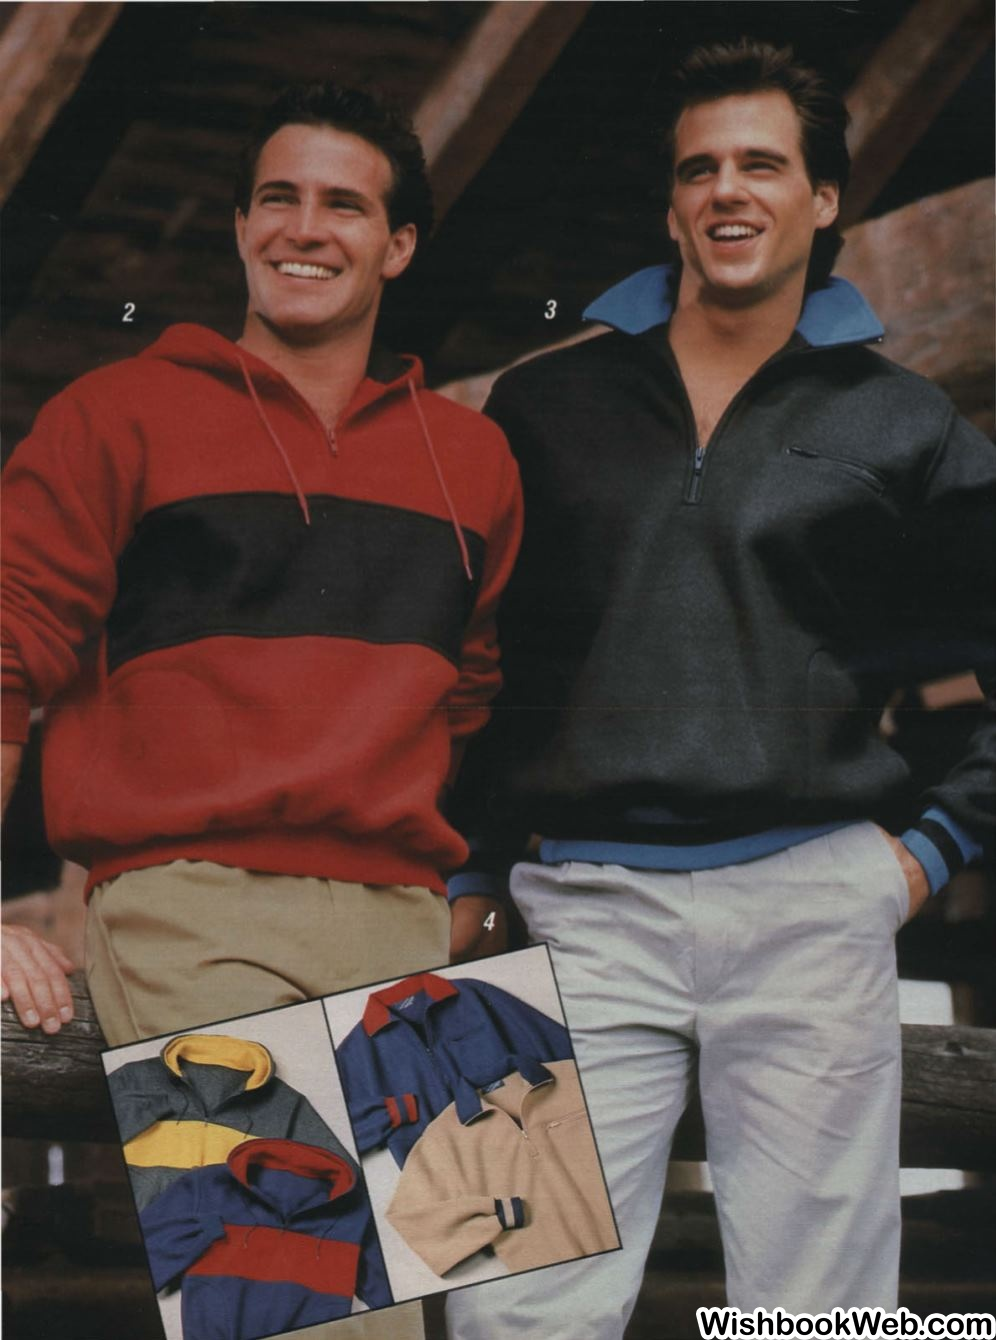 80s fashion for men how to get the 1980s style the - 600×807